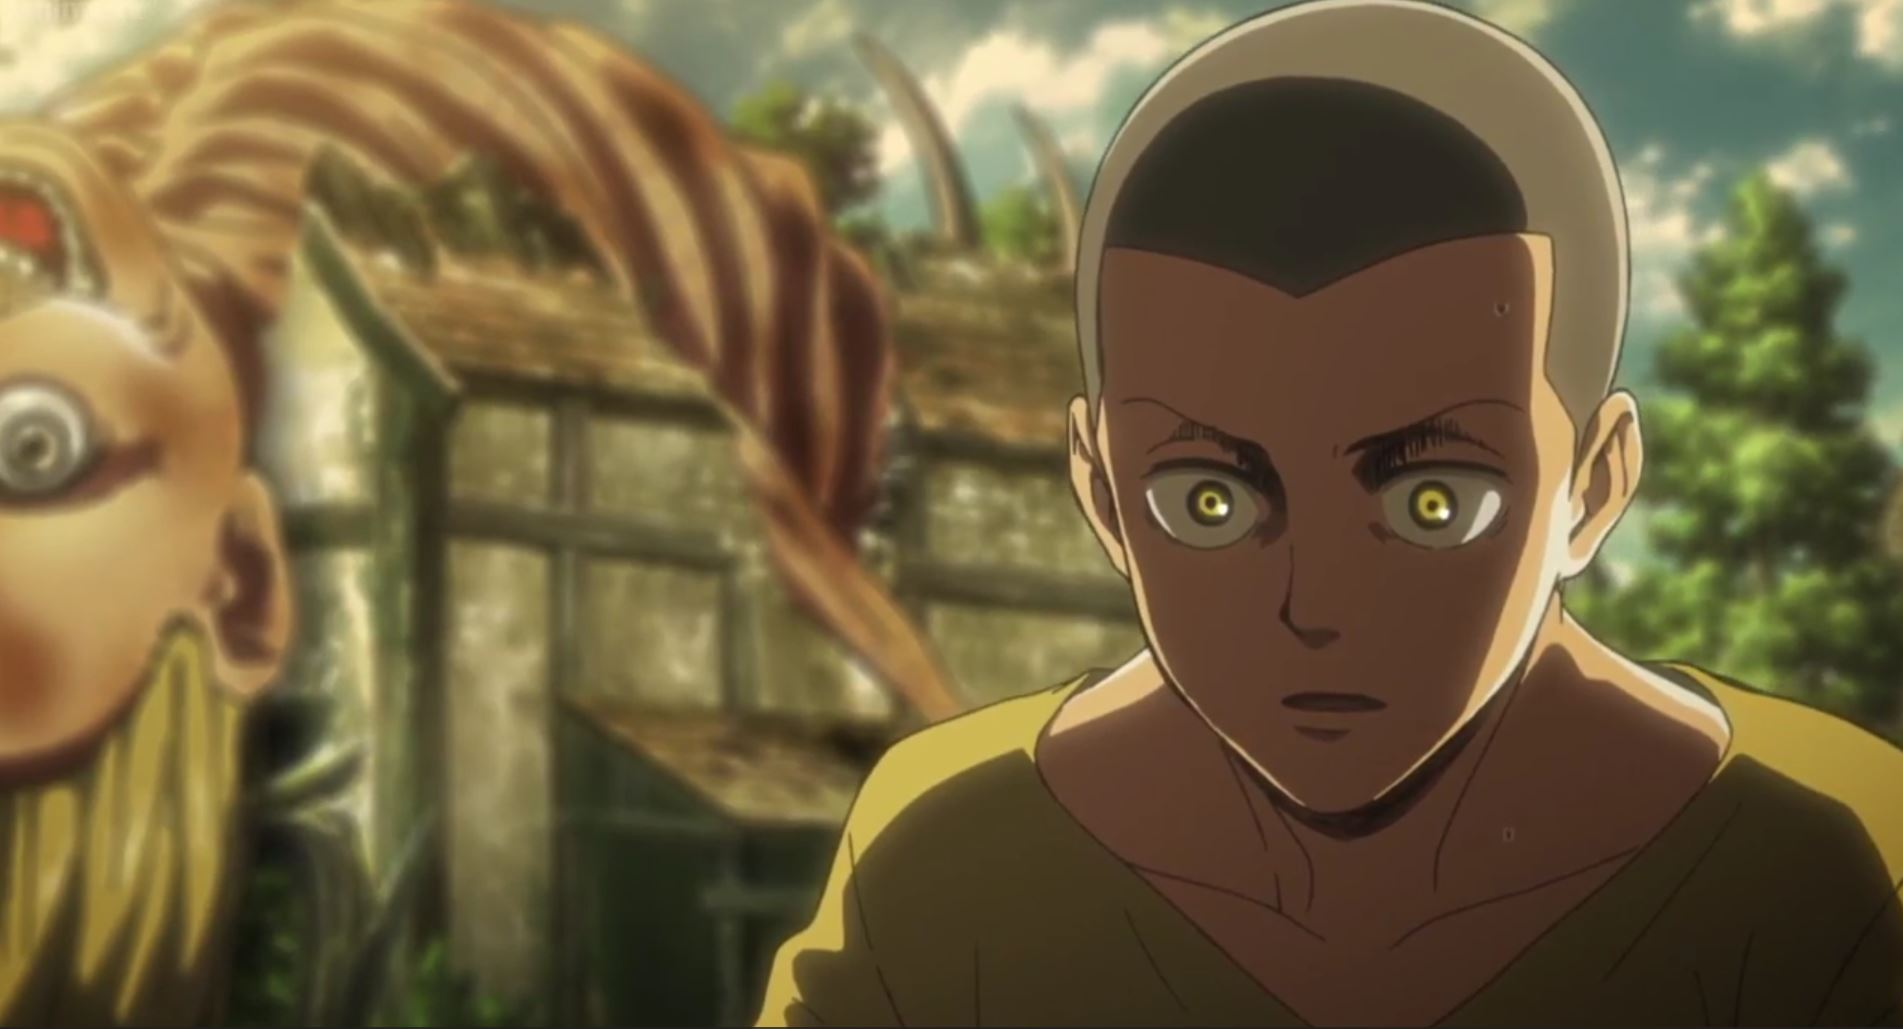 Attack on Titan: Where is Connie's Mother?